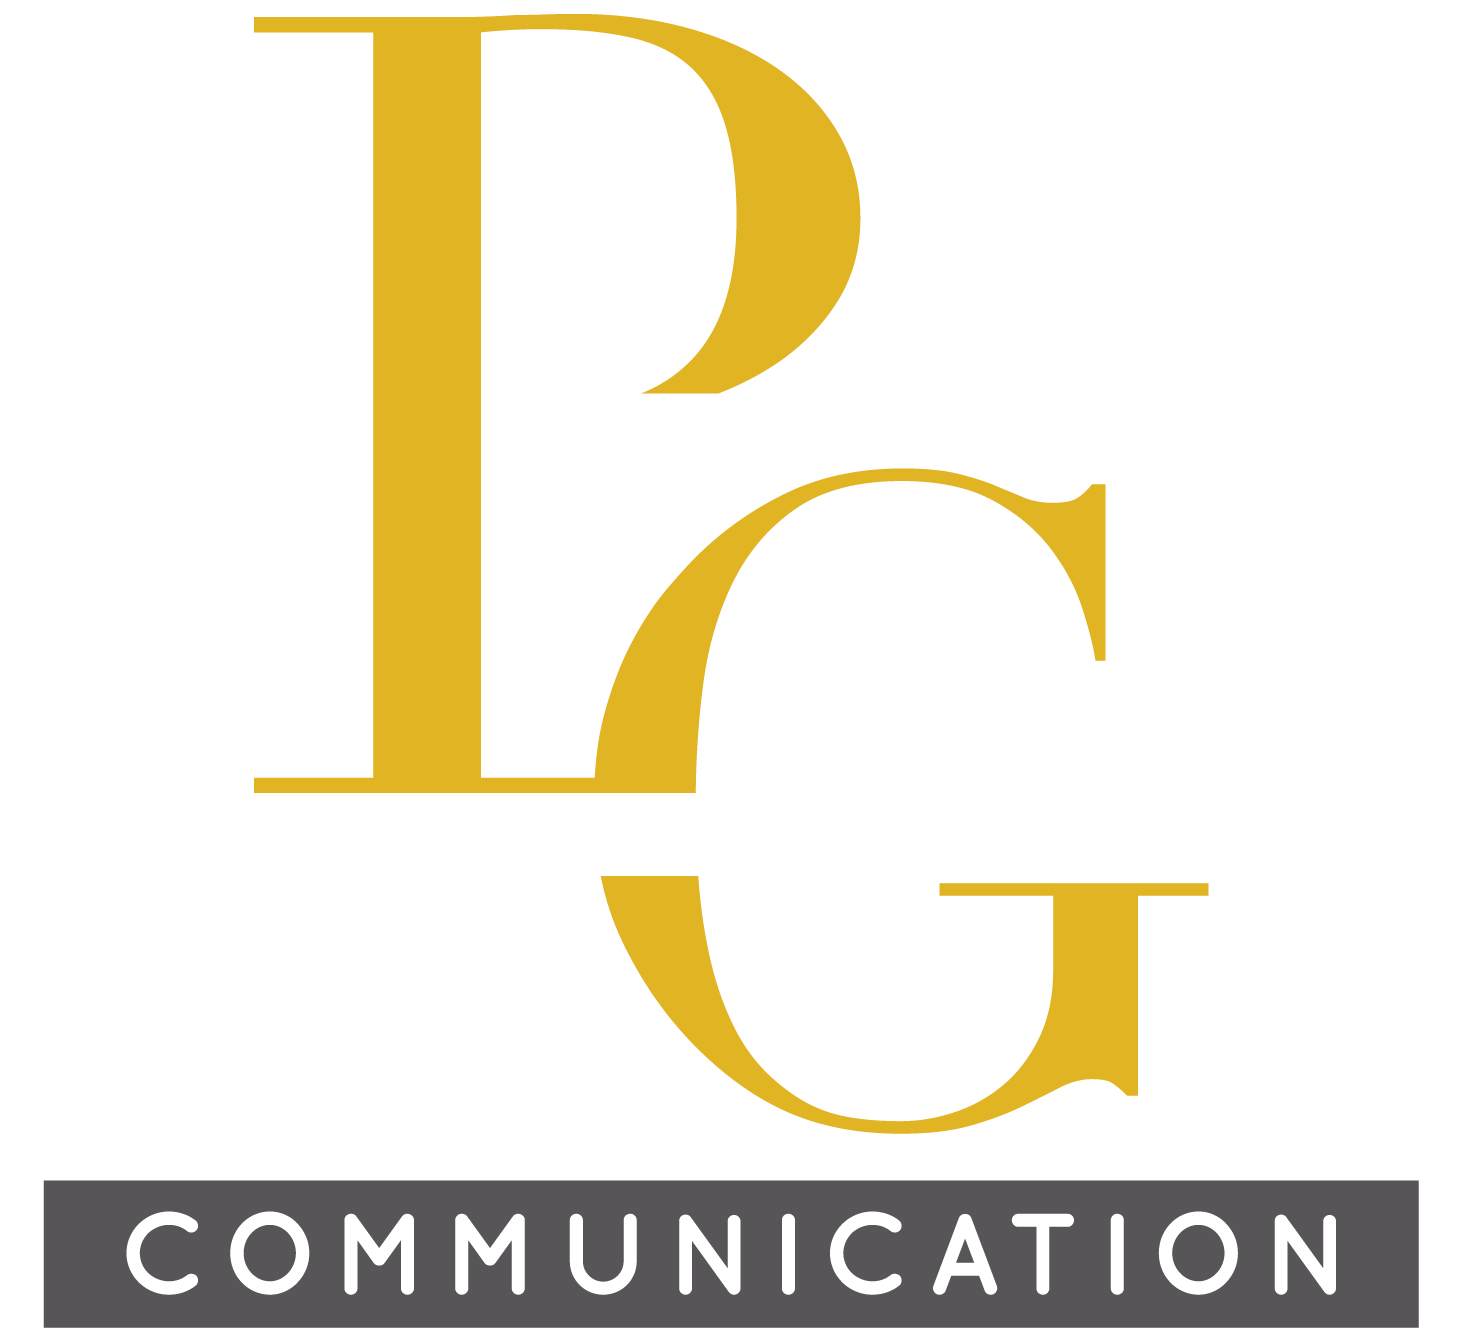 PG Communication